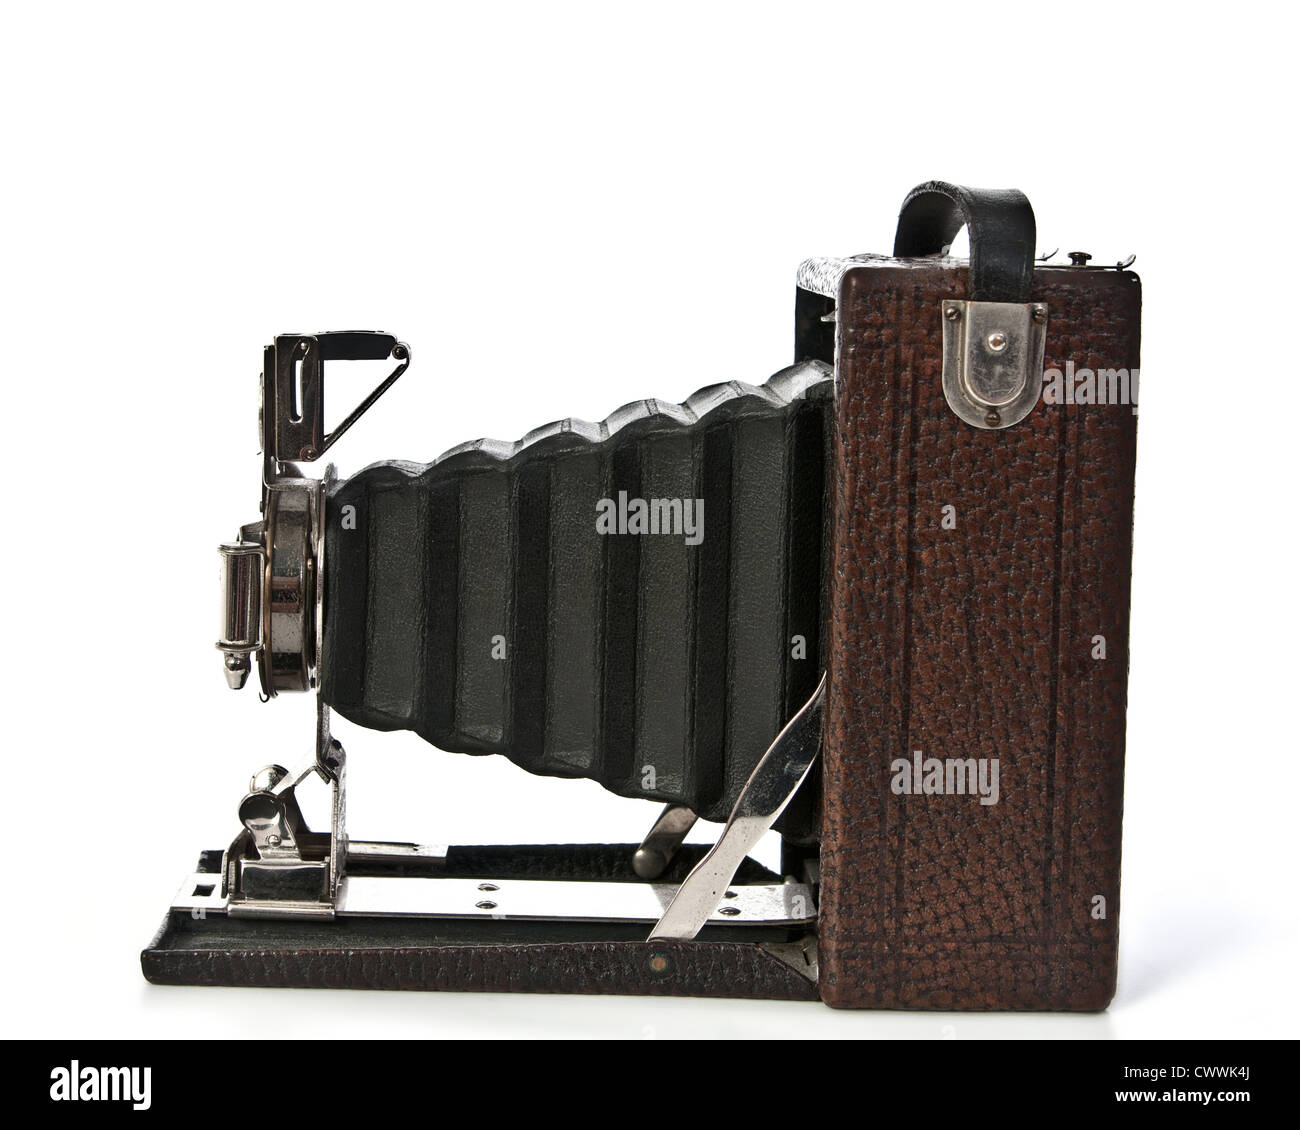 Vintage Folding bellows camera, brown with black bellows, side view. - Stock Image